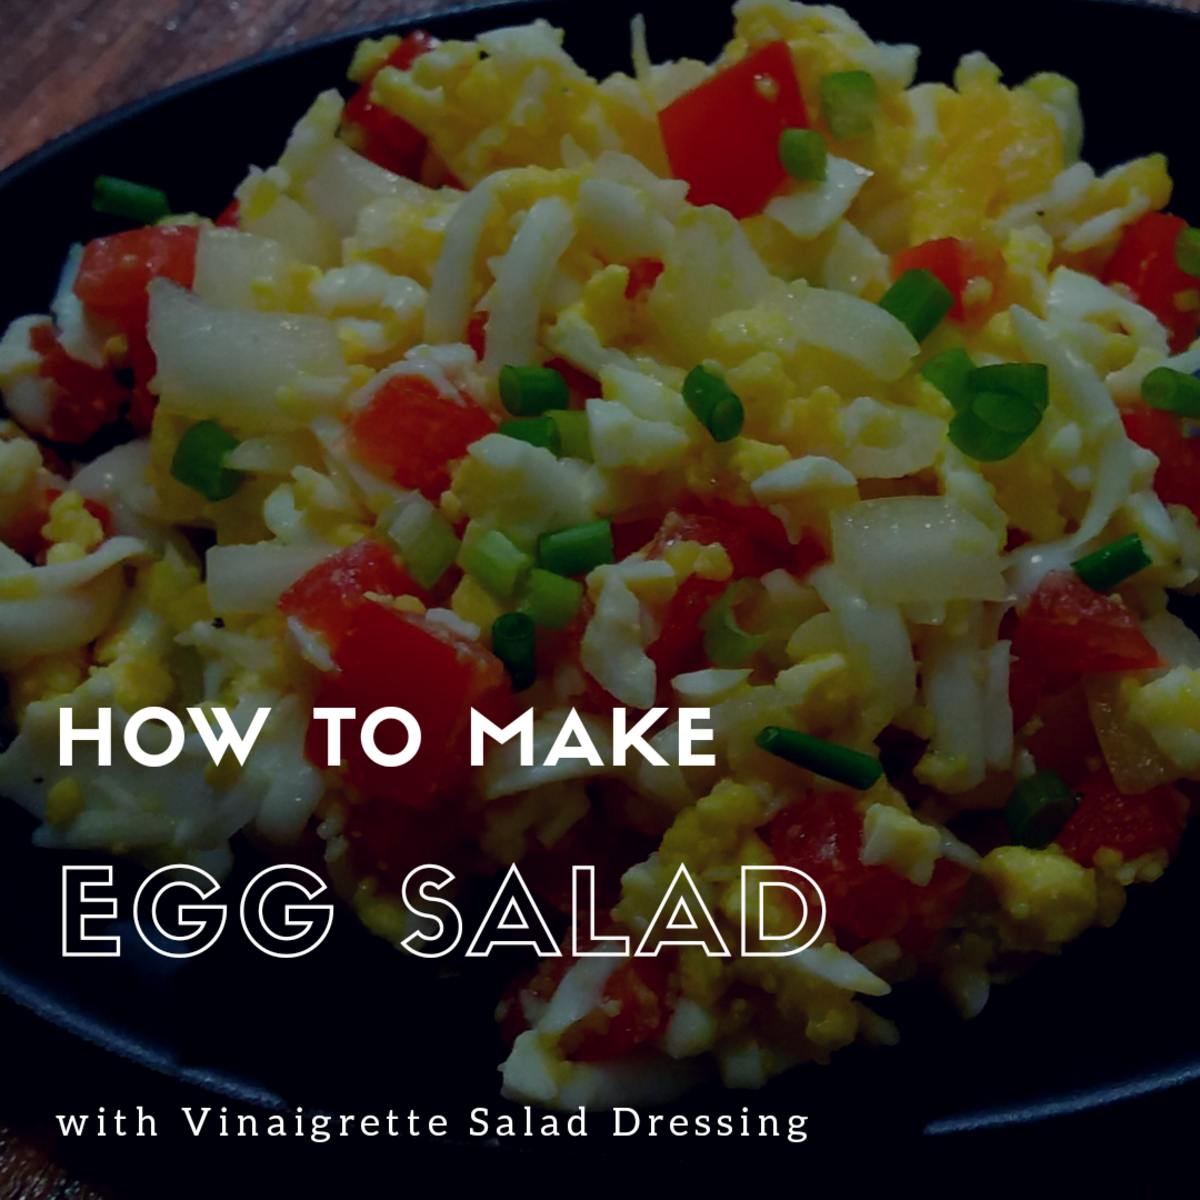 How to Make Egg Salad With Vinaigrette Salad Dressing (No Mayo!)